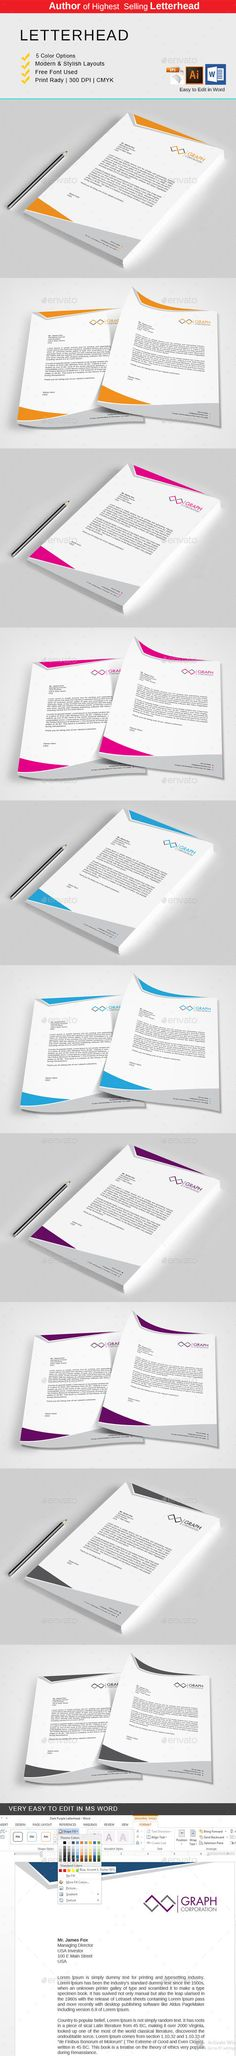 Letterhead Design Template PSD, Vector EPS, AI Illustrator, MS - company letterhead word template